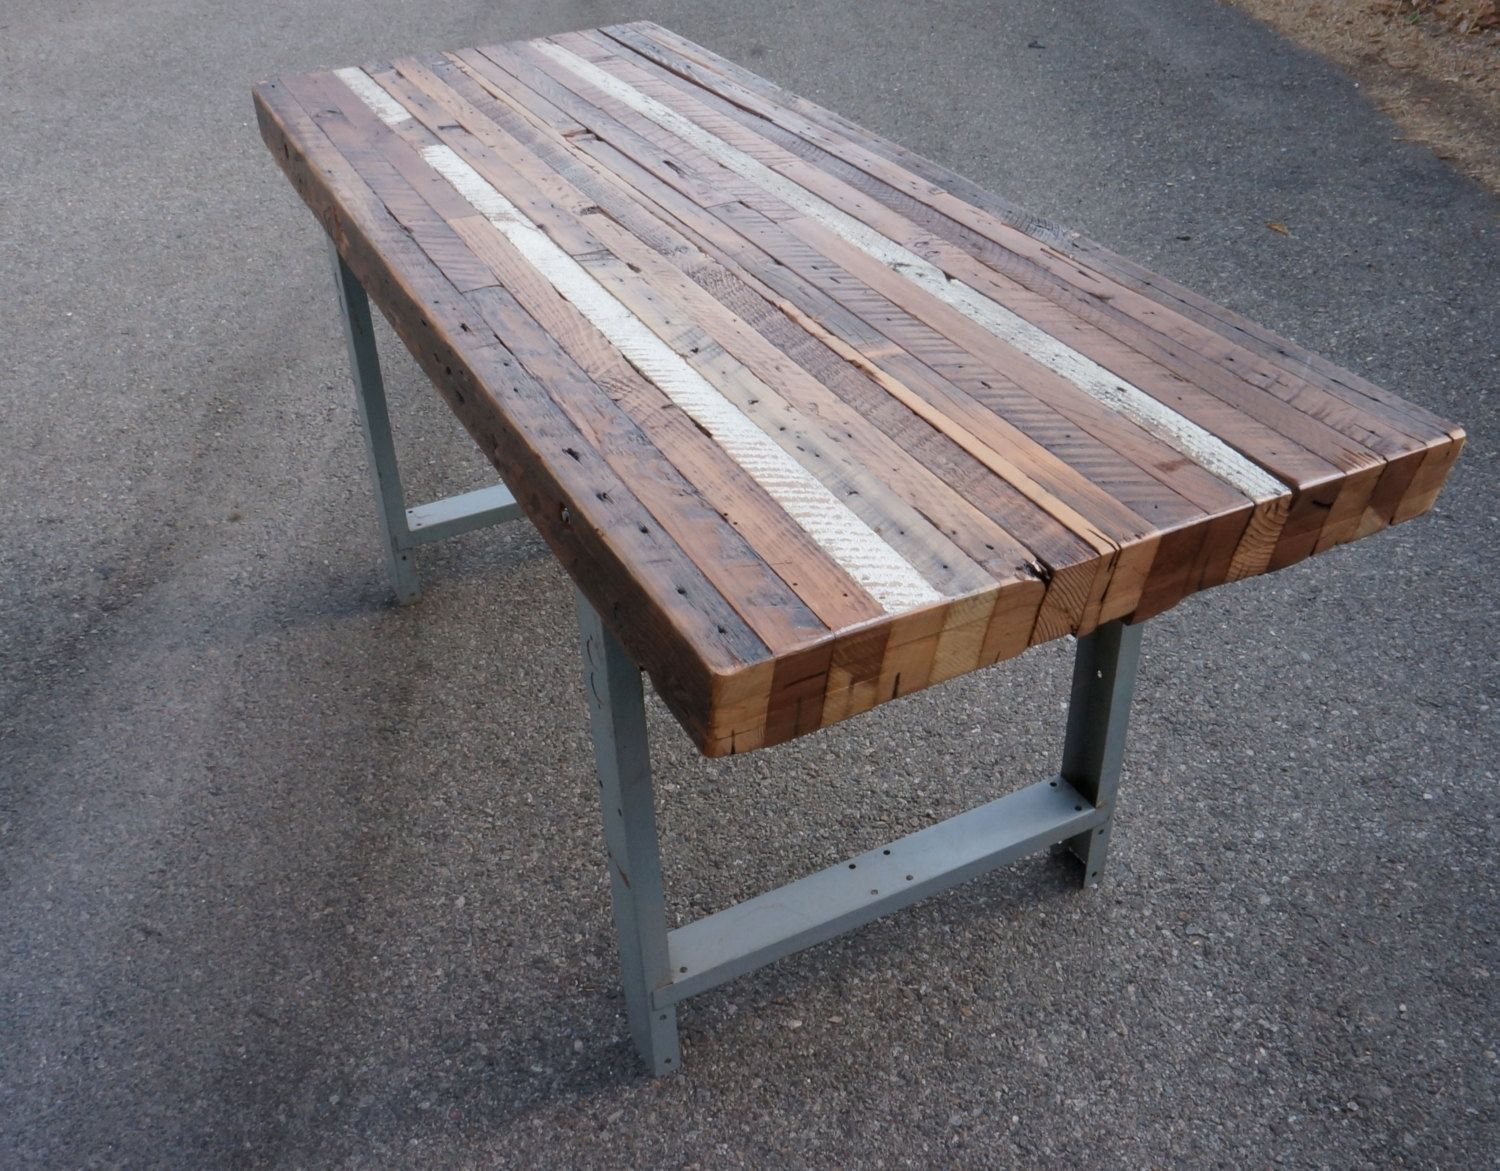 Handmade custom outdoor indoor rustic industrial Rustic wood dining table